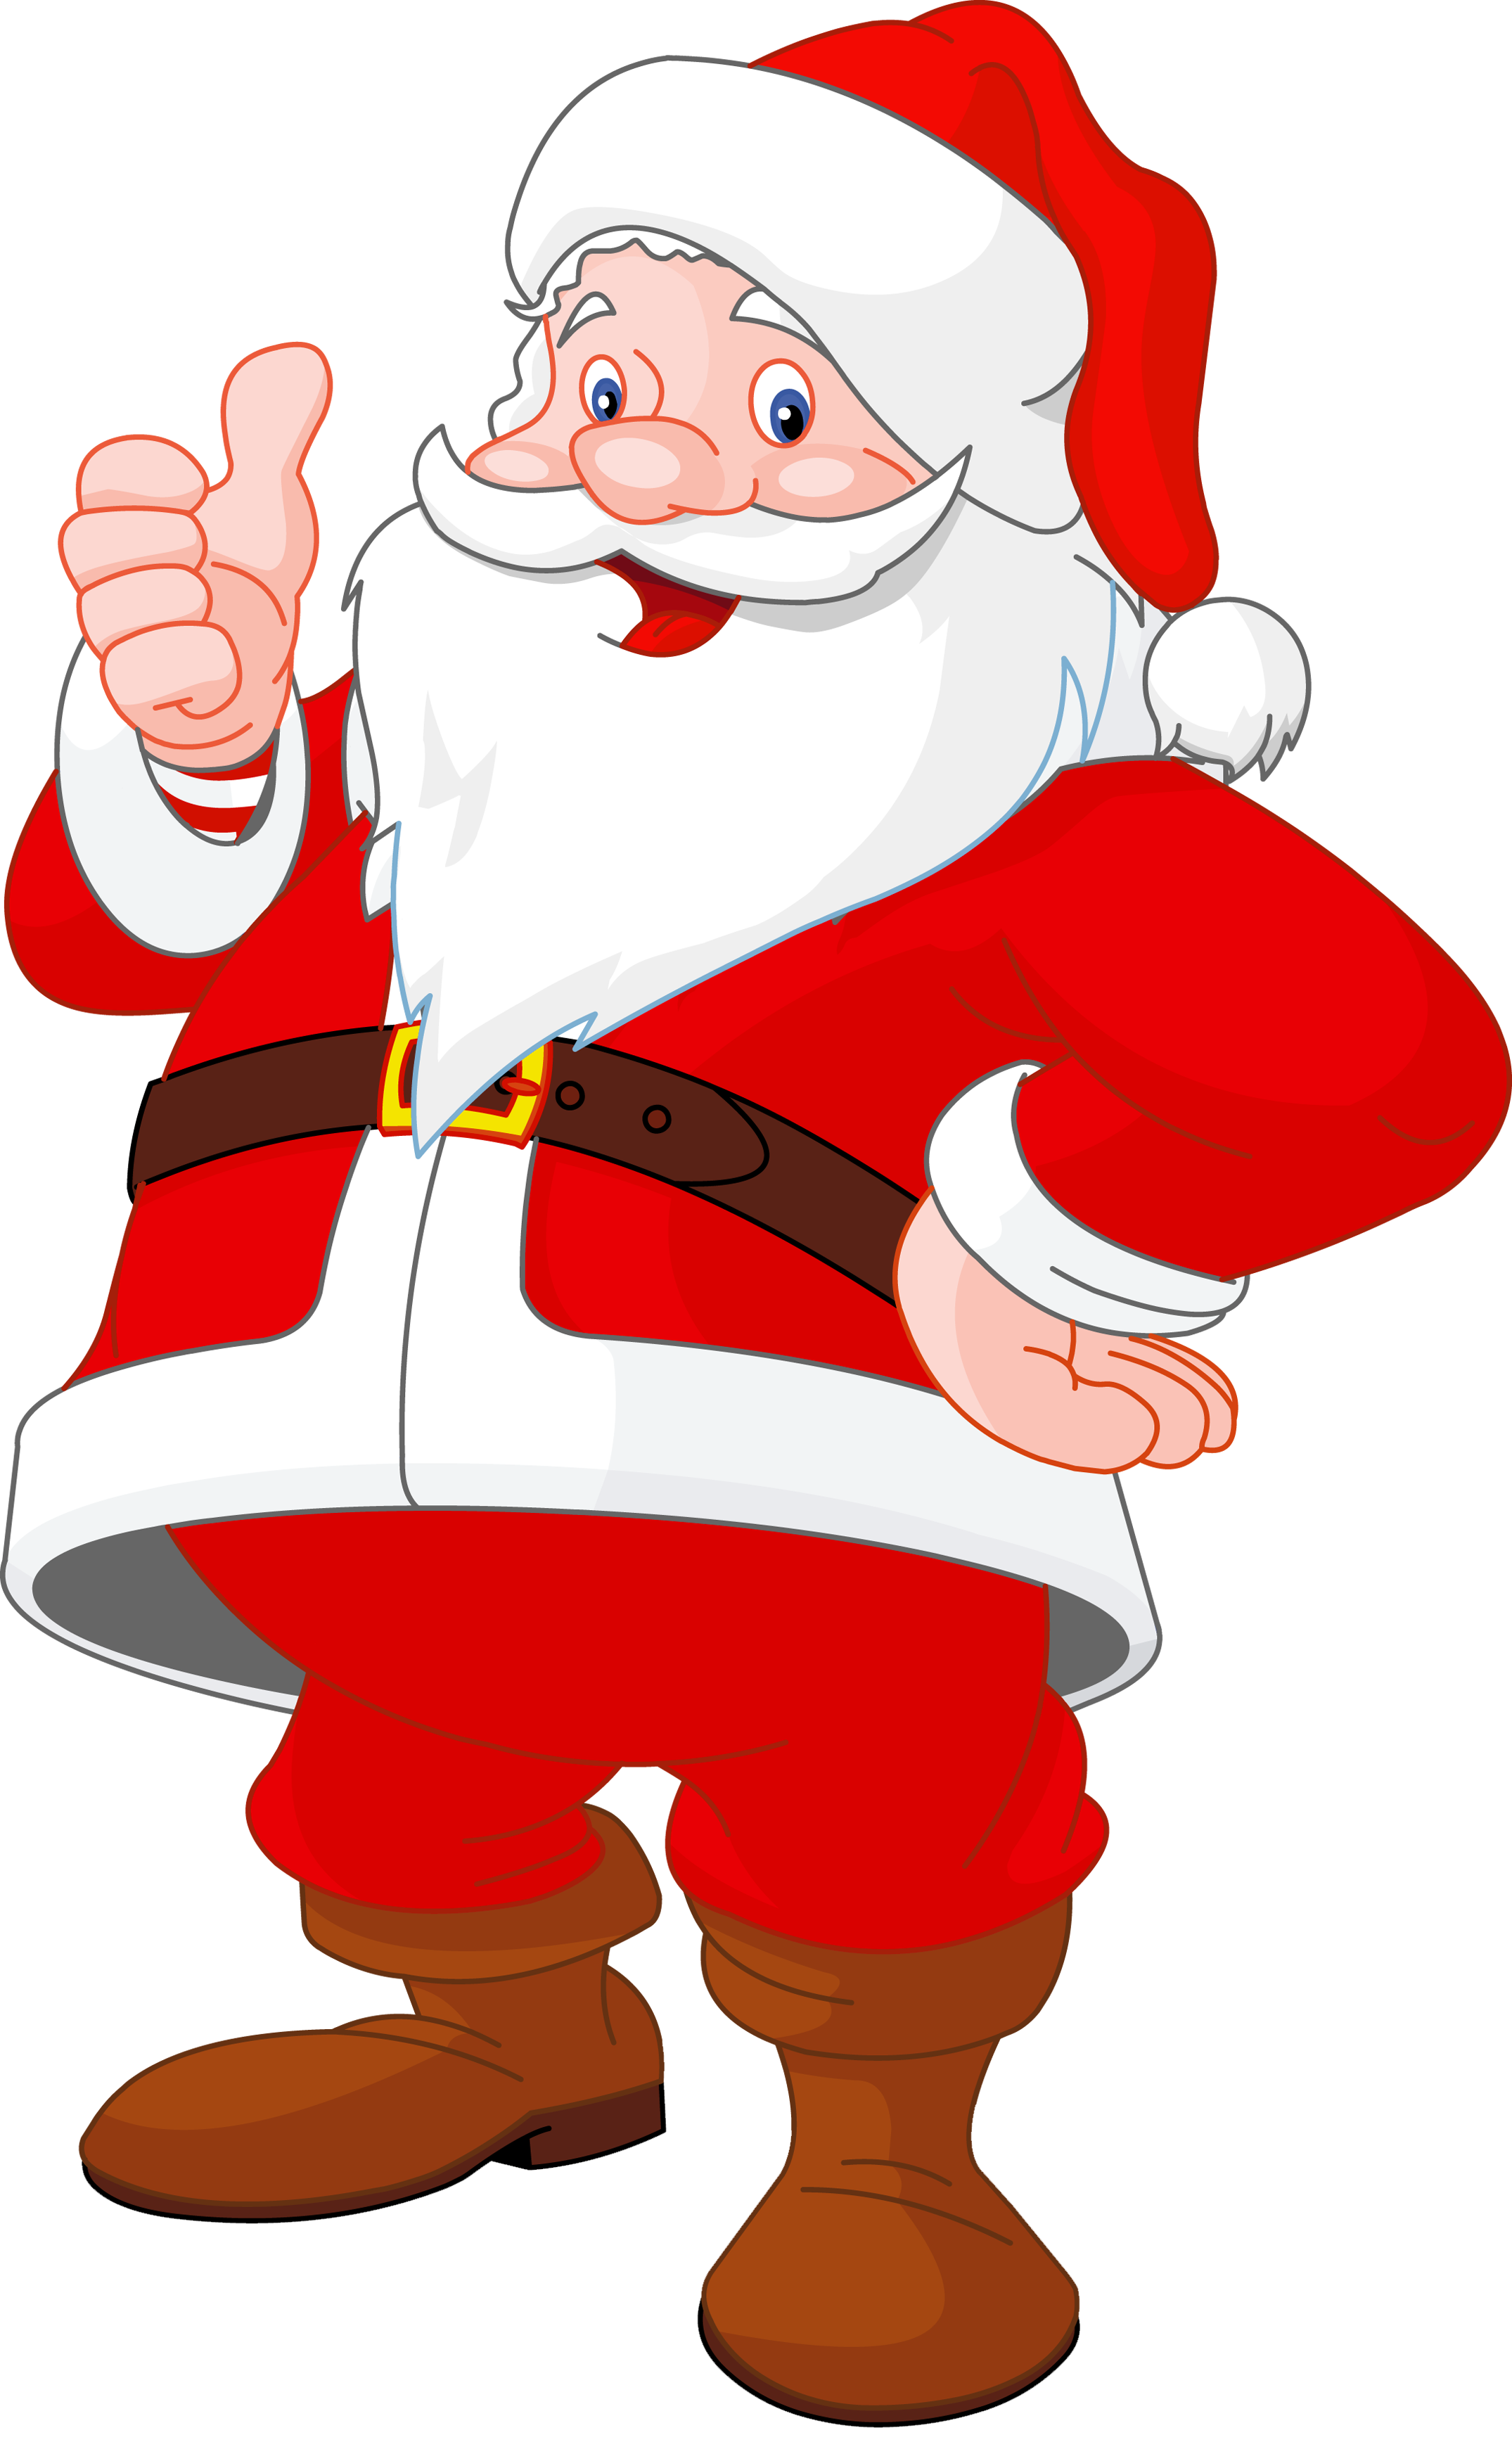 Transparent Santa Claus | Gallery Yopriceville - High-Quality ...